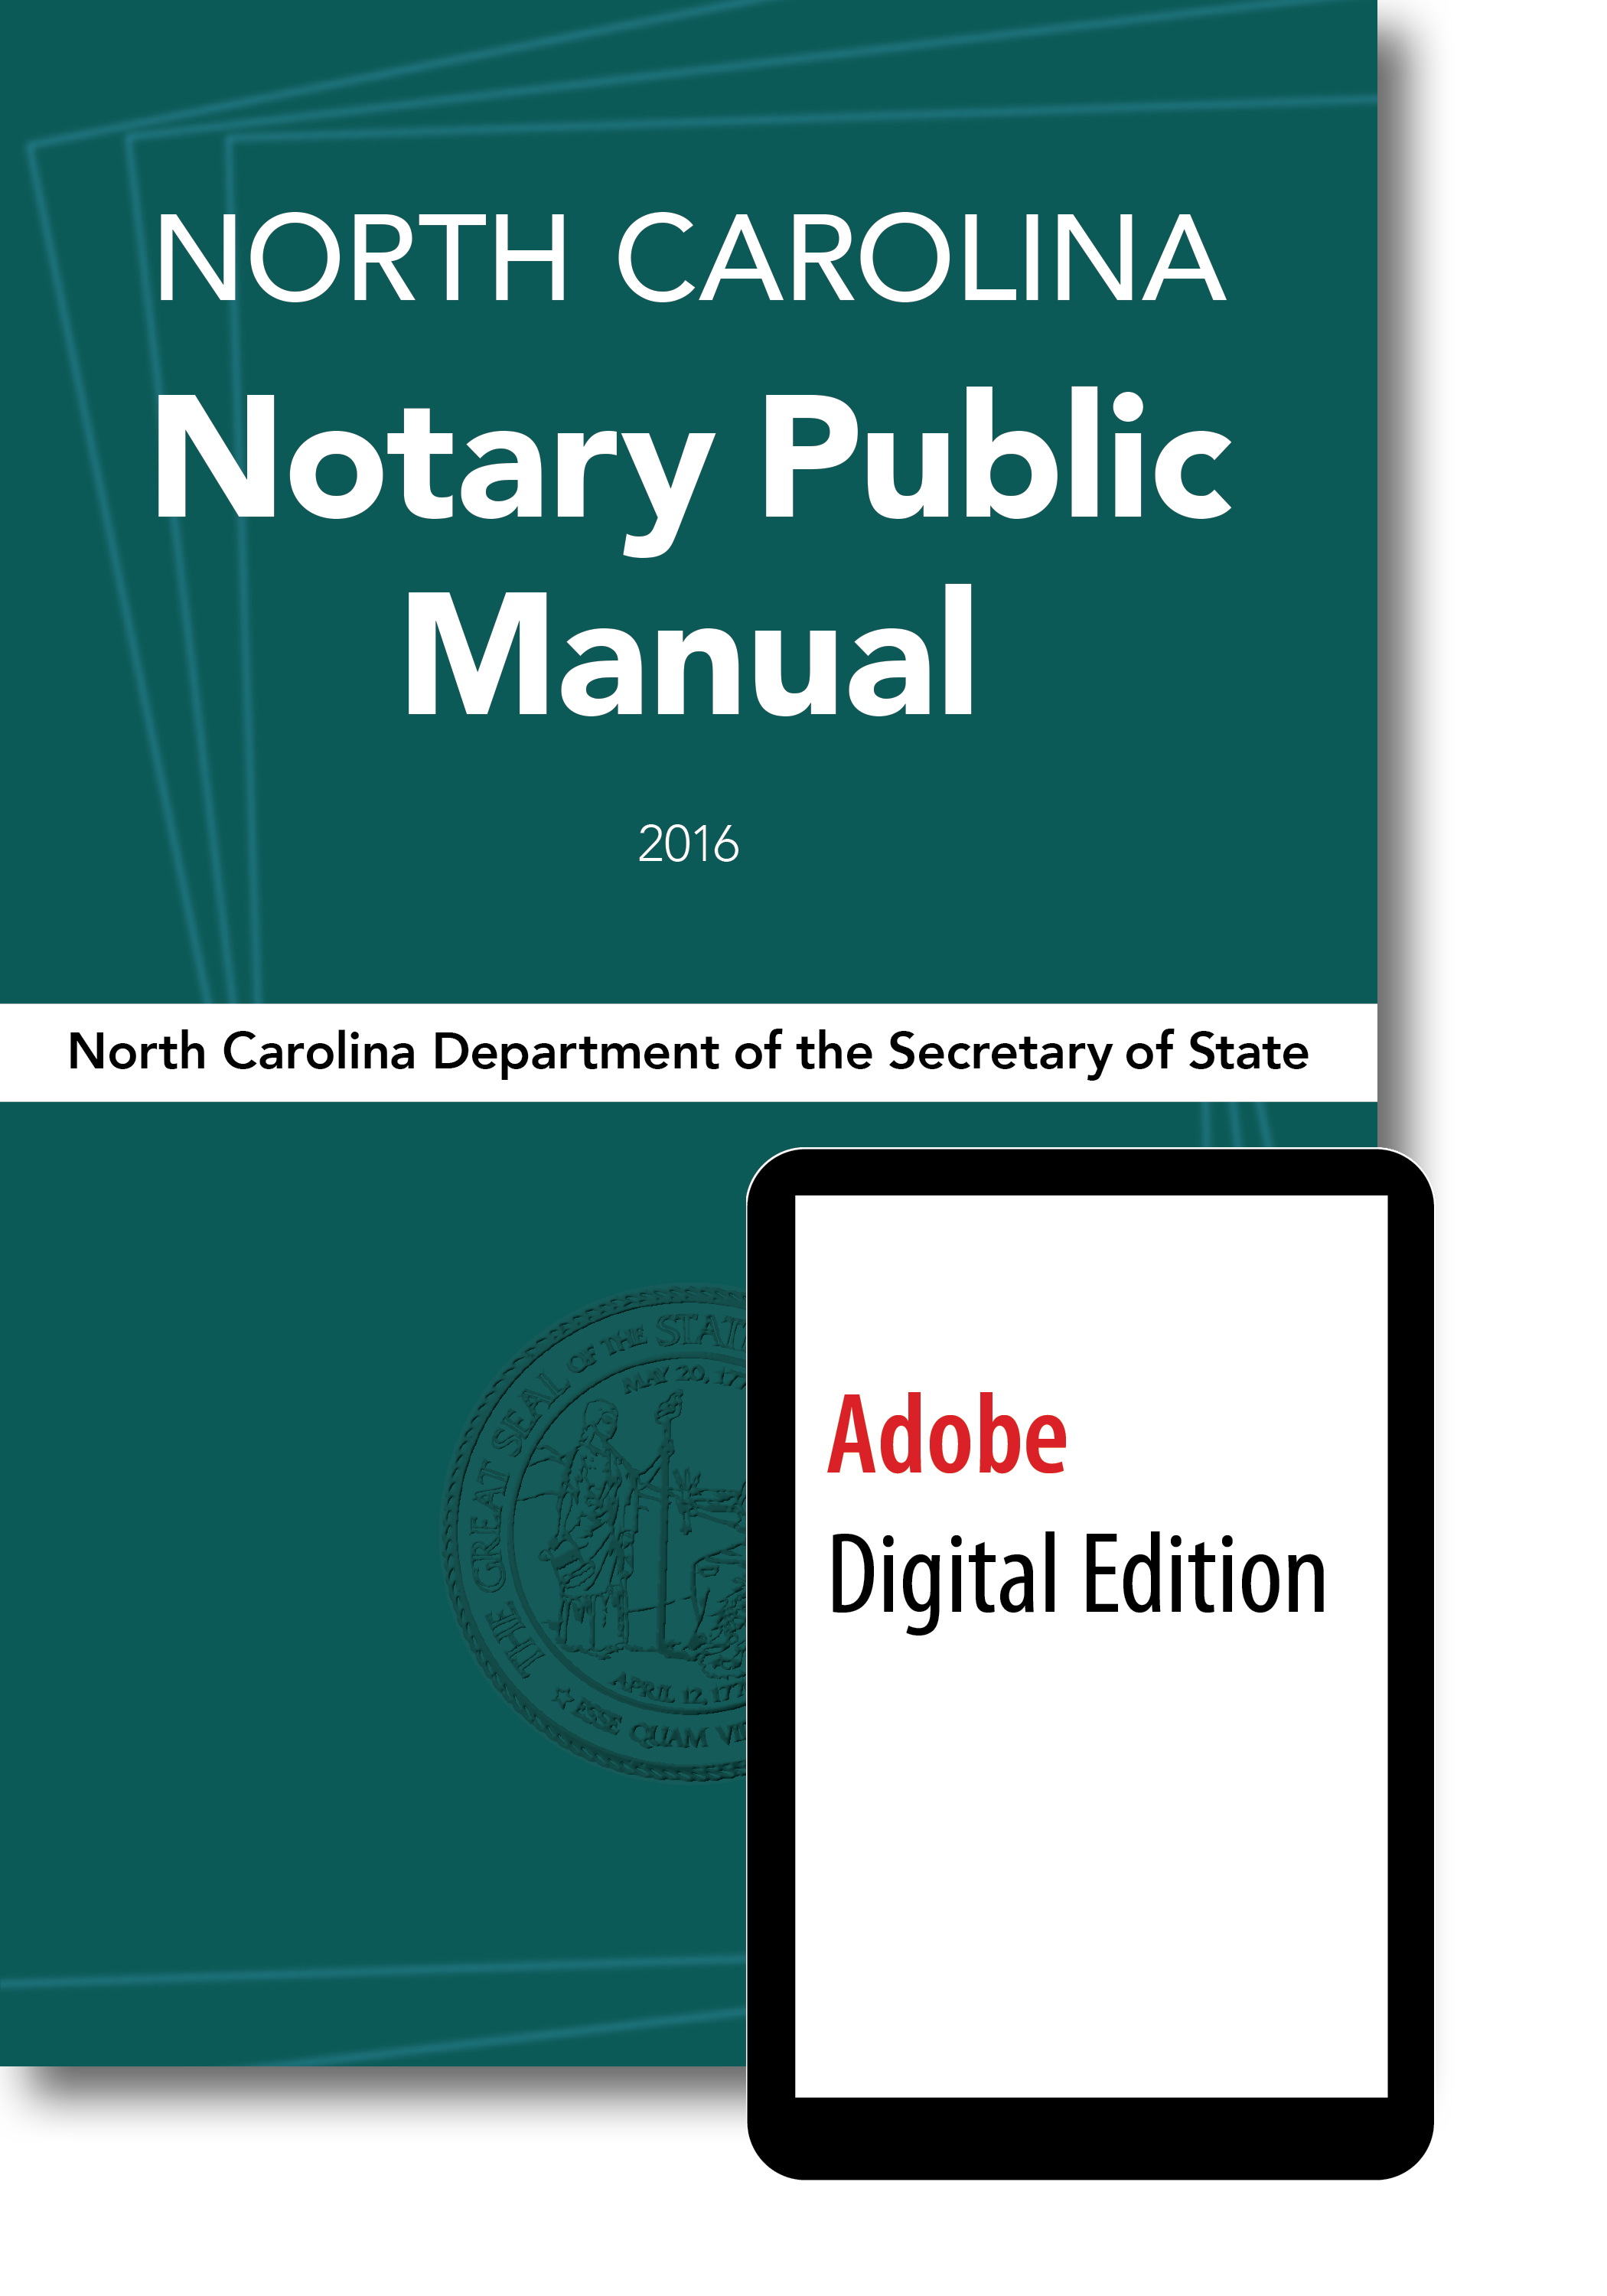 North Carolina Notary Public Manual, eBook for Nook, iBook, iPad, Sony